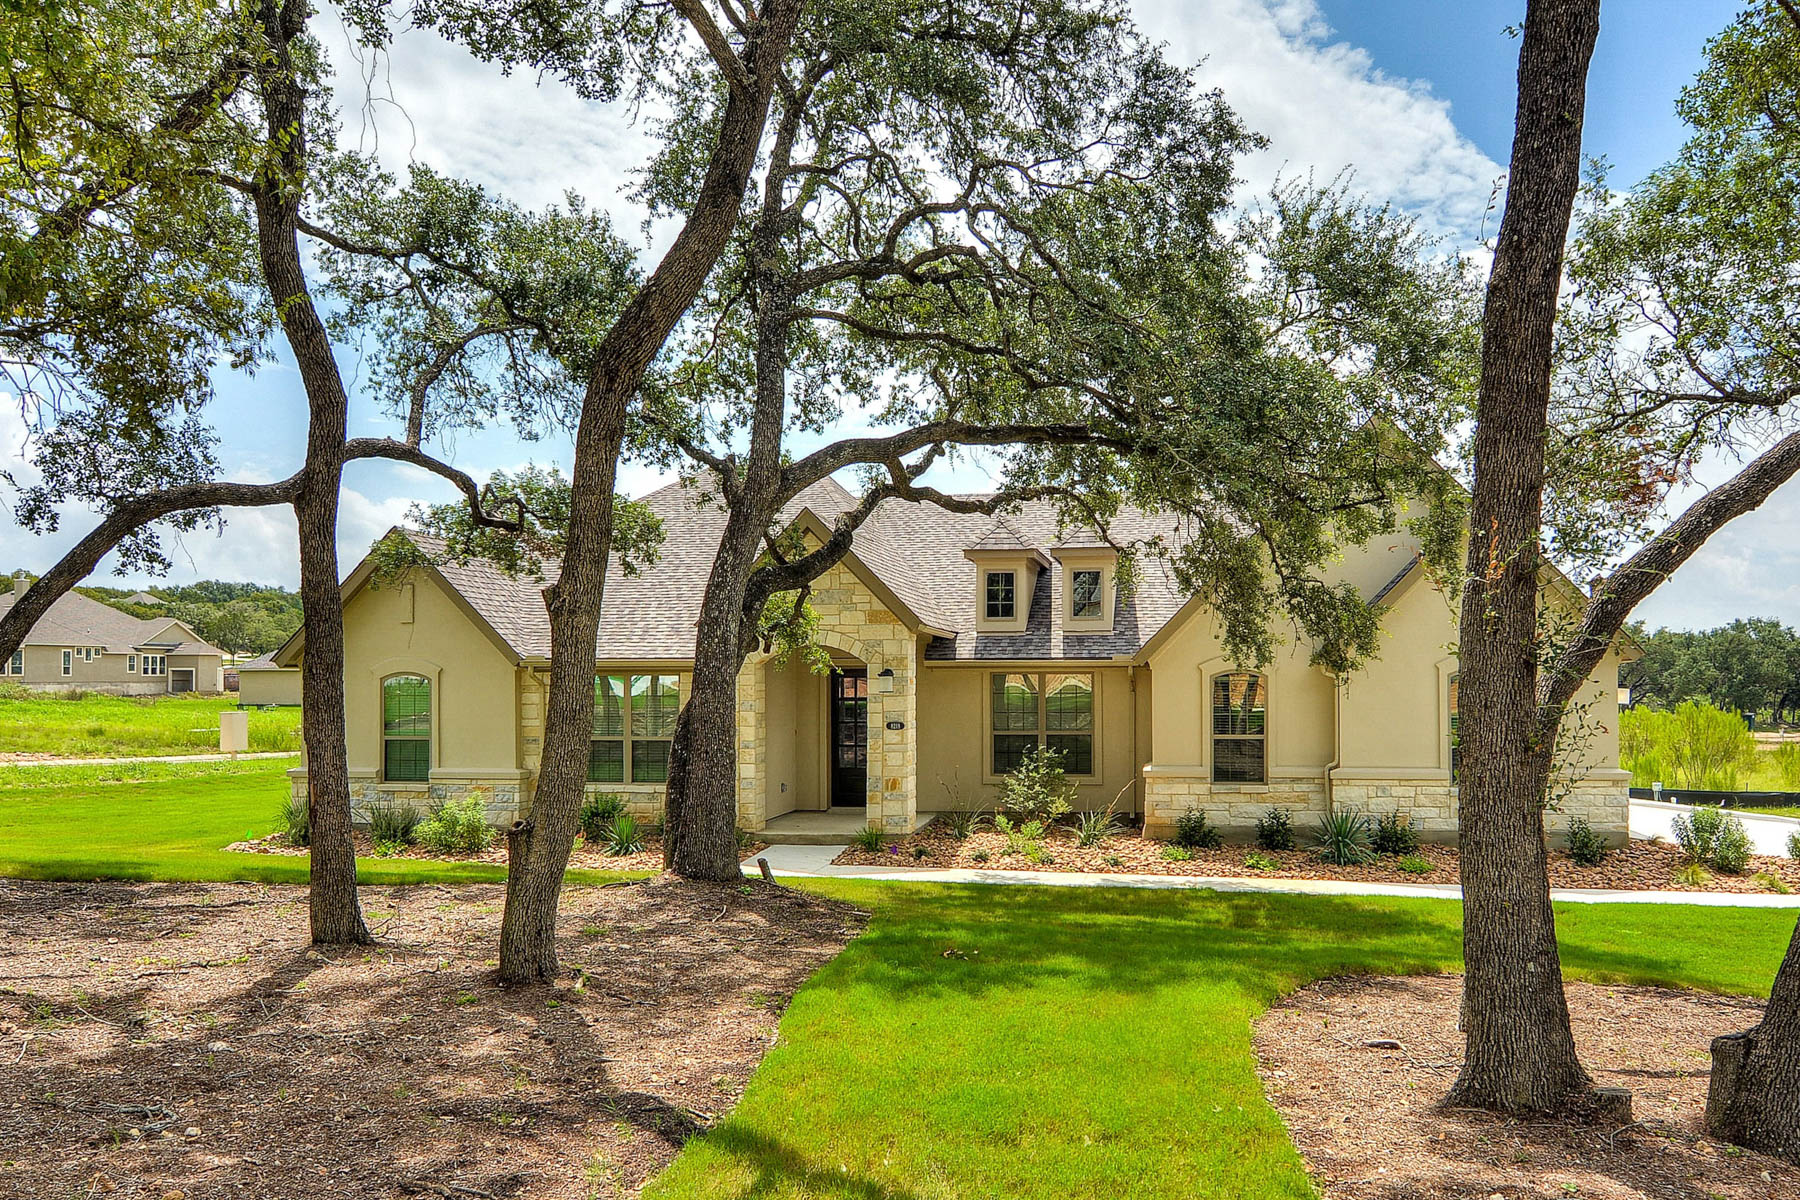 Single Family Home for Sale at Stunning Brohn Home on a Corner Lot 8218 Garden Arbor San Antonio, Texas, 78266 United States